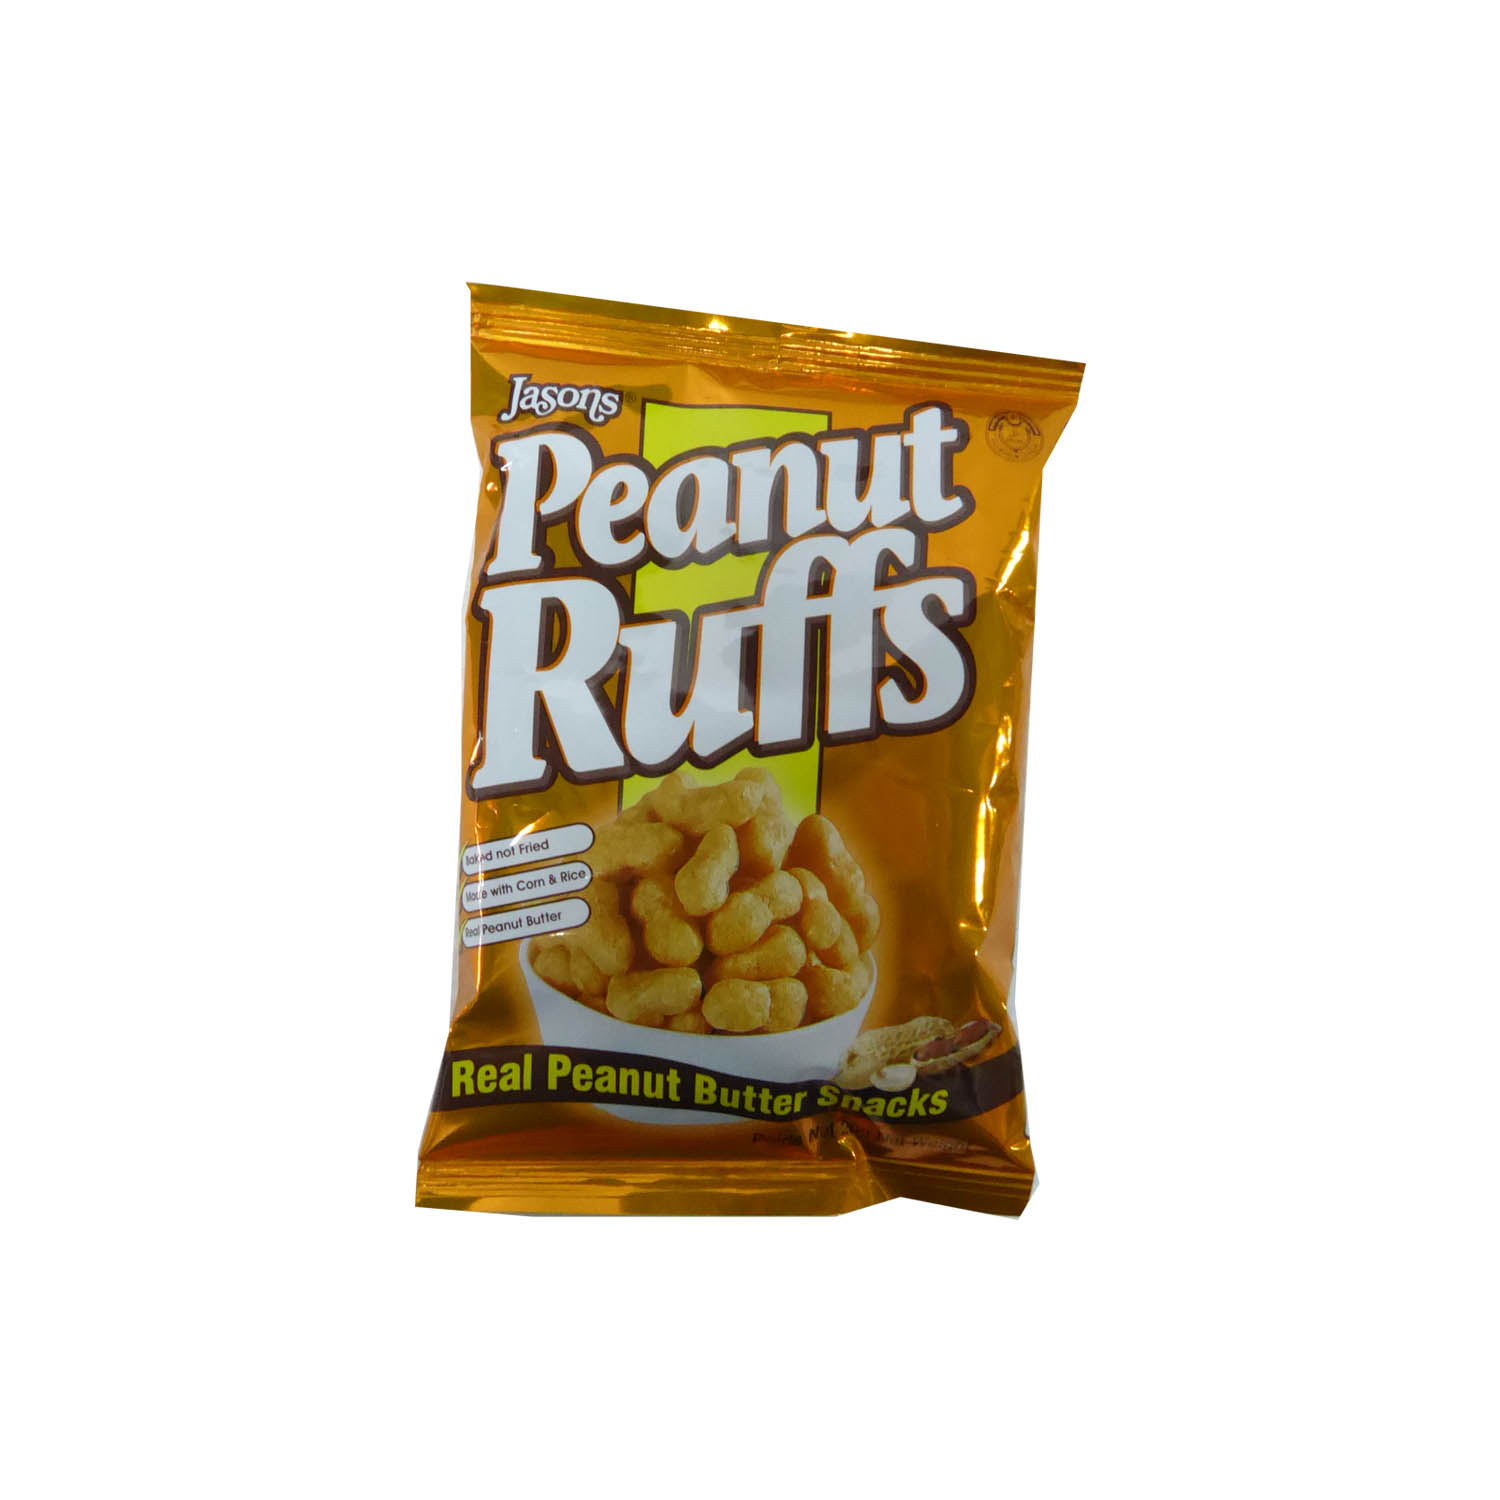 Jasons Peanut Ruffs 20g